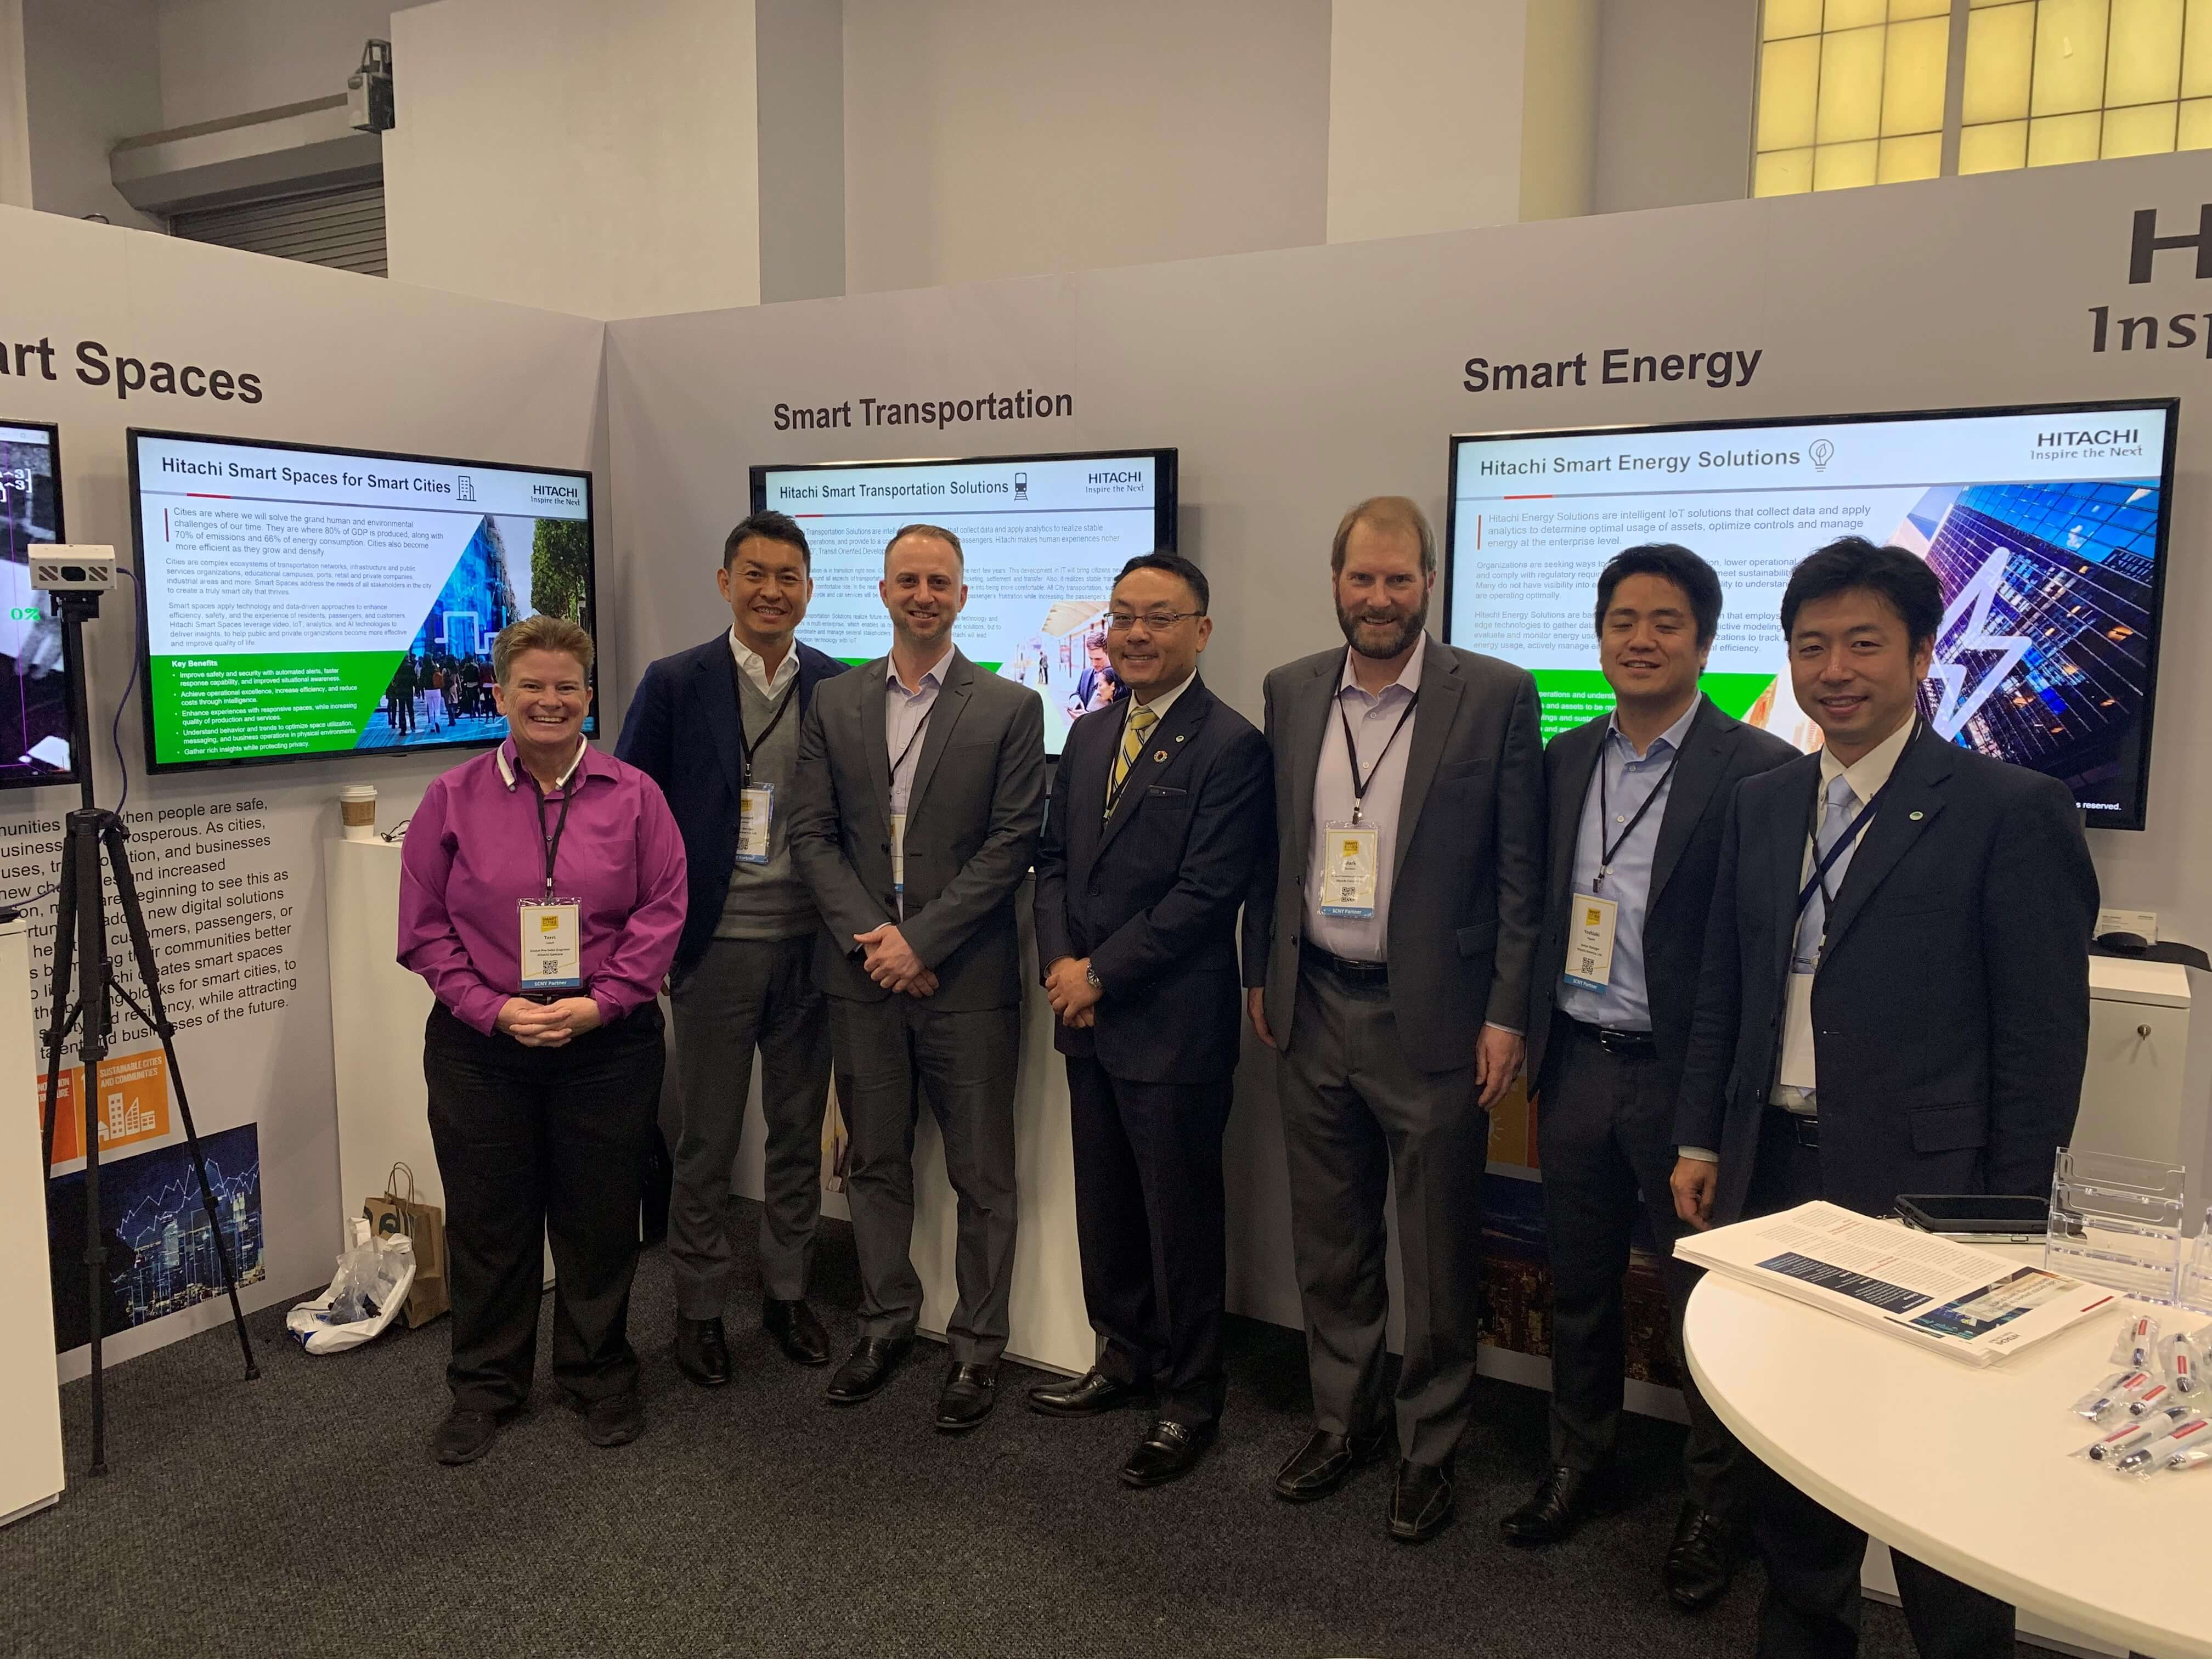 Hitachi Smart City solutions exhibit at Smart Cities New York 2019